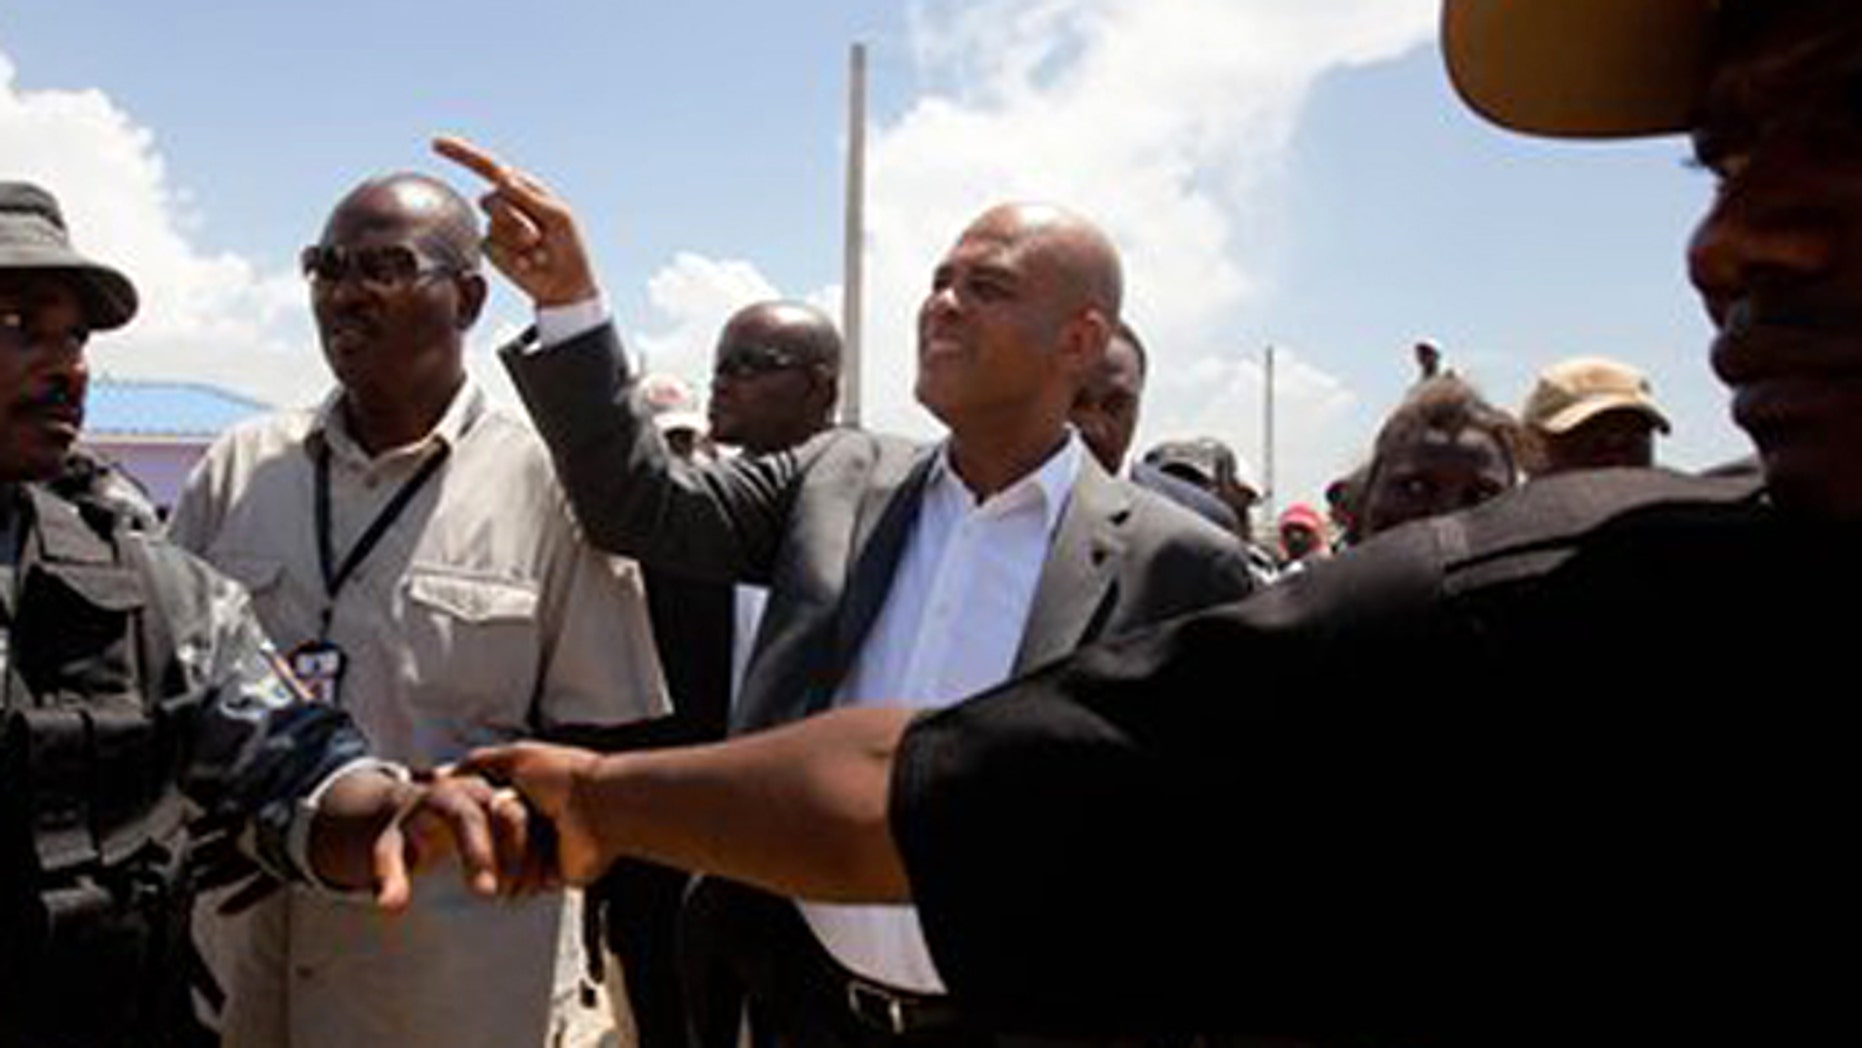 In this photo taken Thursday July 21, 2011, a security detail forms a human barricade around Haiti's President Michel Martelly, center, during a tour of model homes in Port-au-Prince, Haiti.